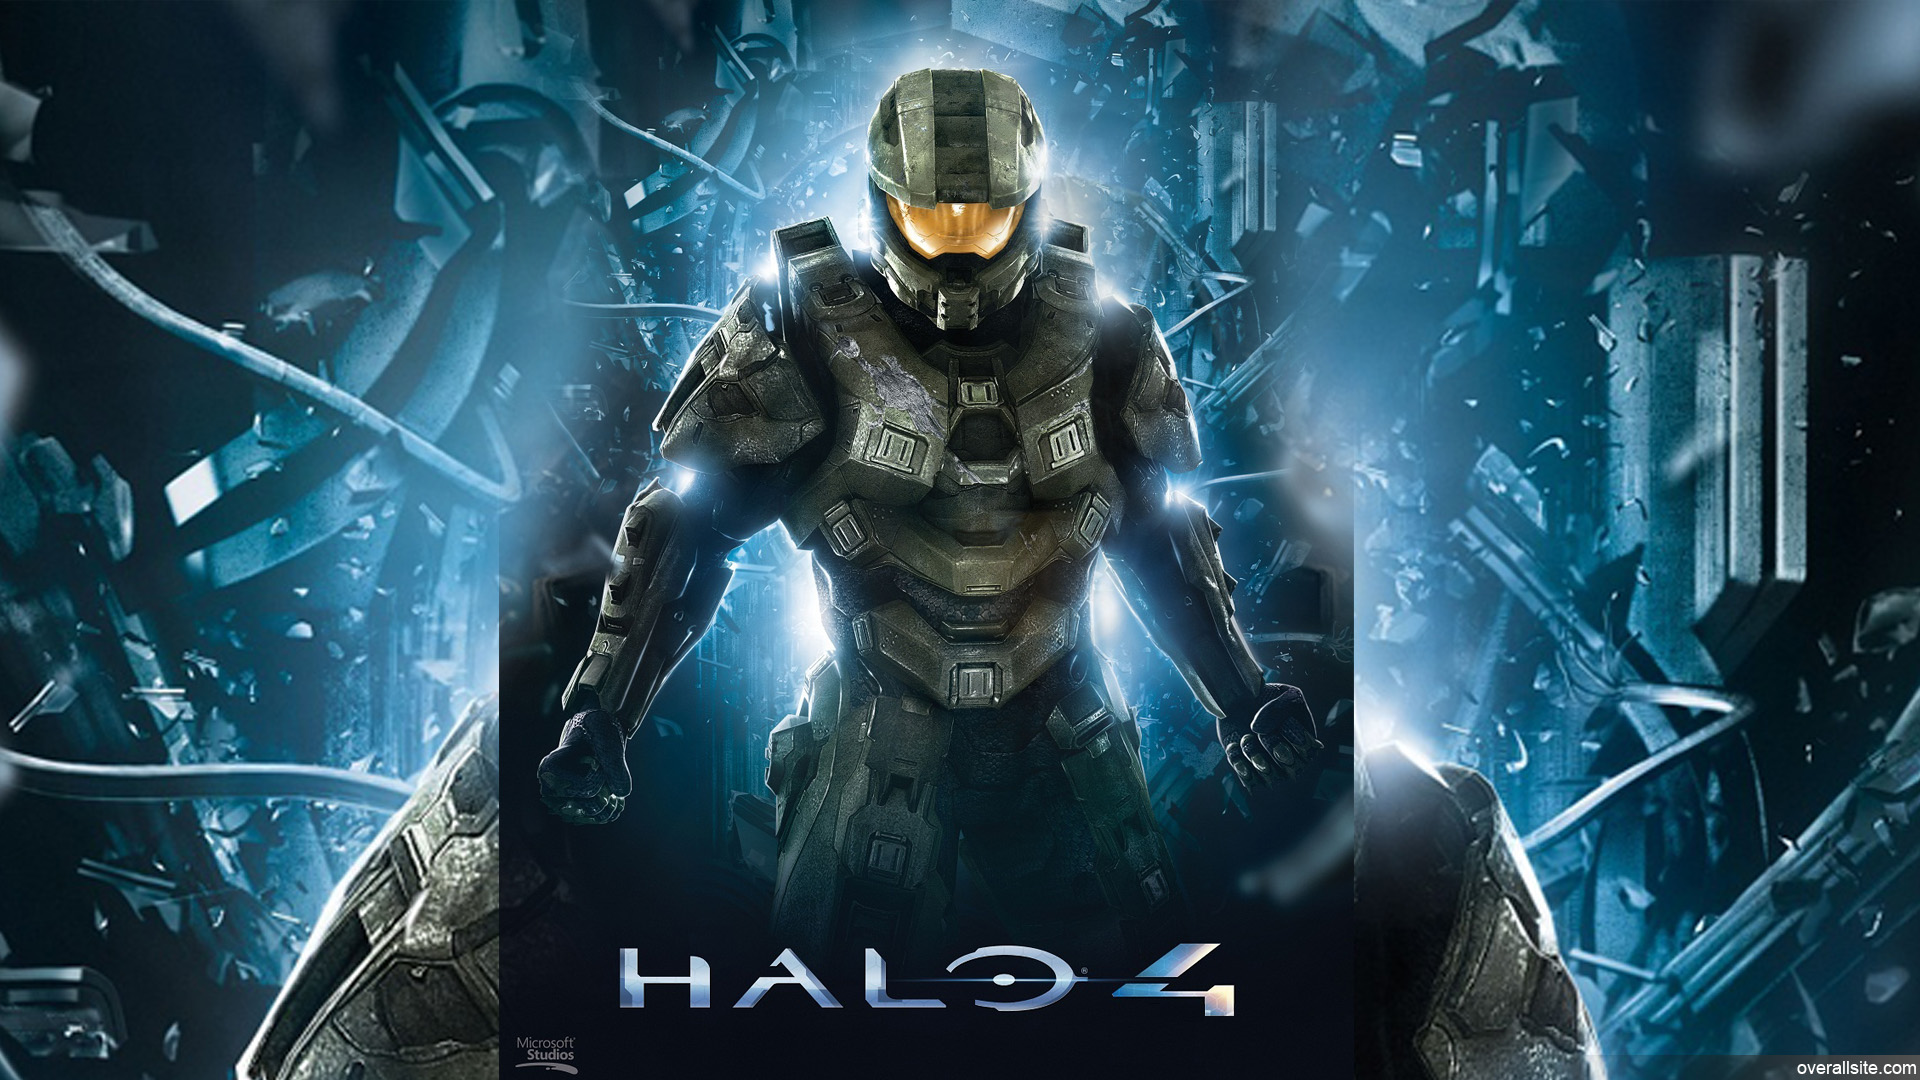 halo 4 wallpapers overallsite FanboyGamingcom 1920x1080